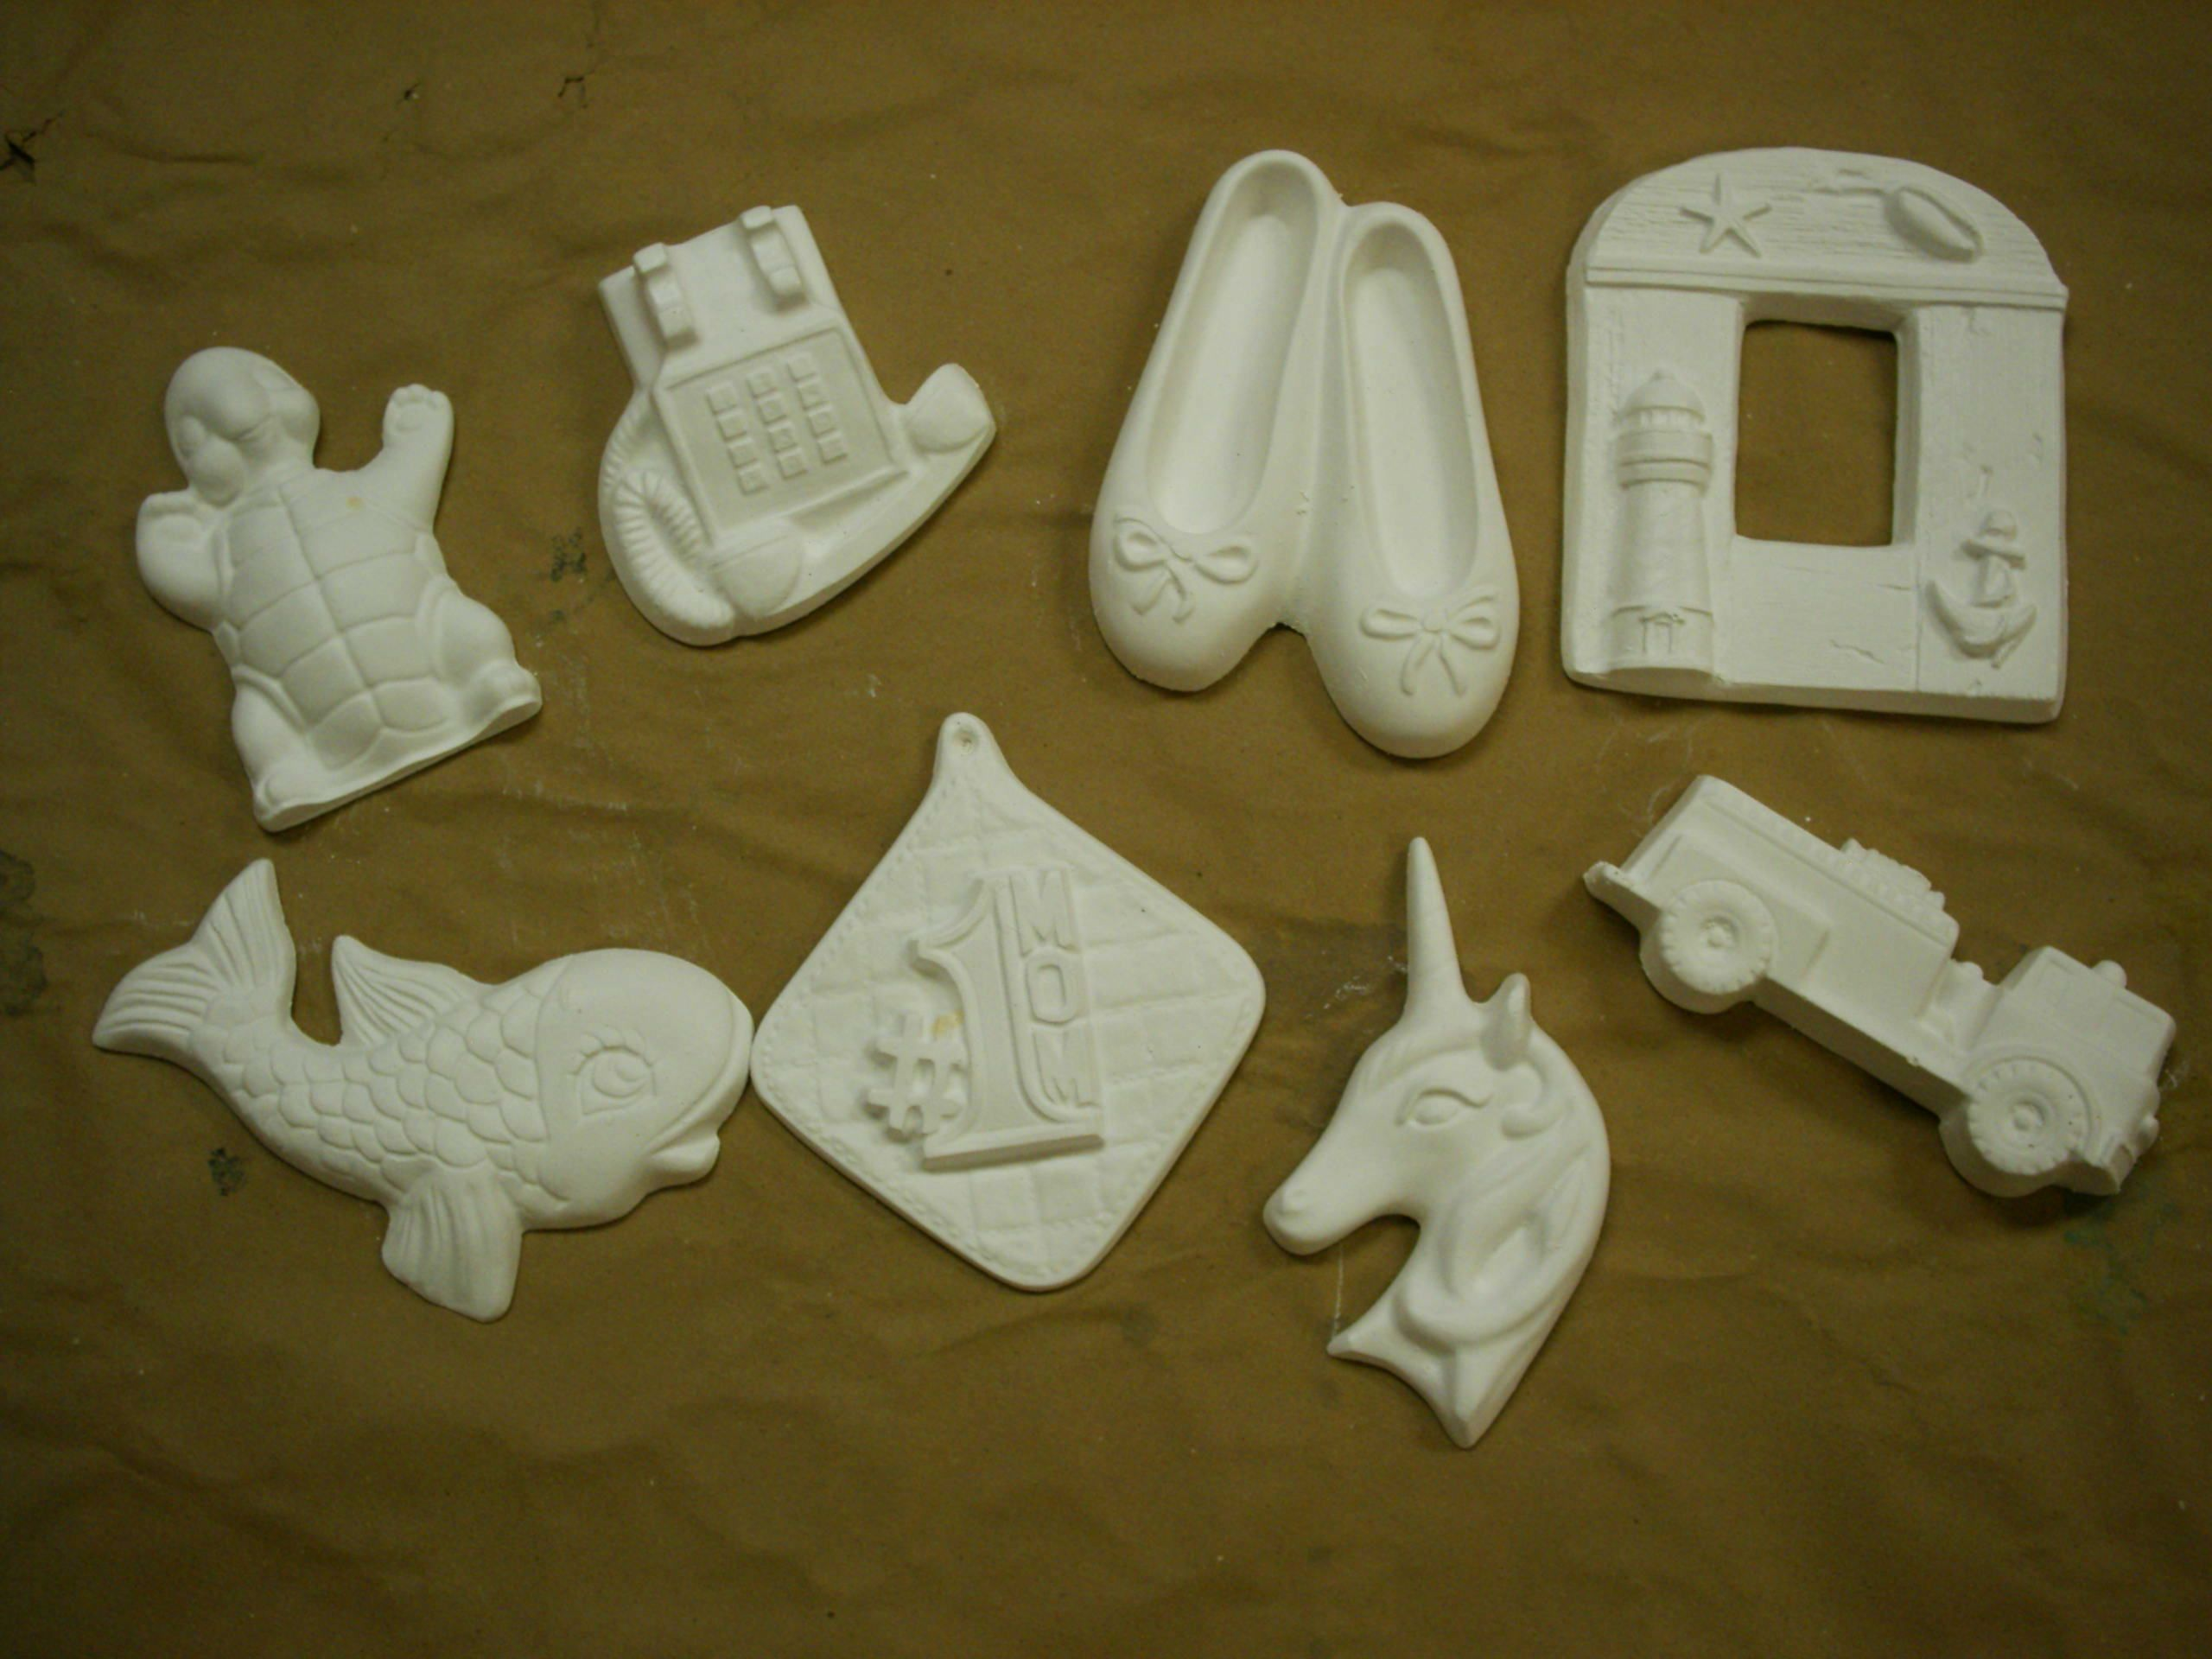 Plaster crafts ready to paint plaster painting plaster for Plaster crafts to paint